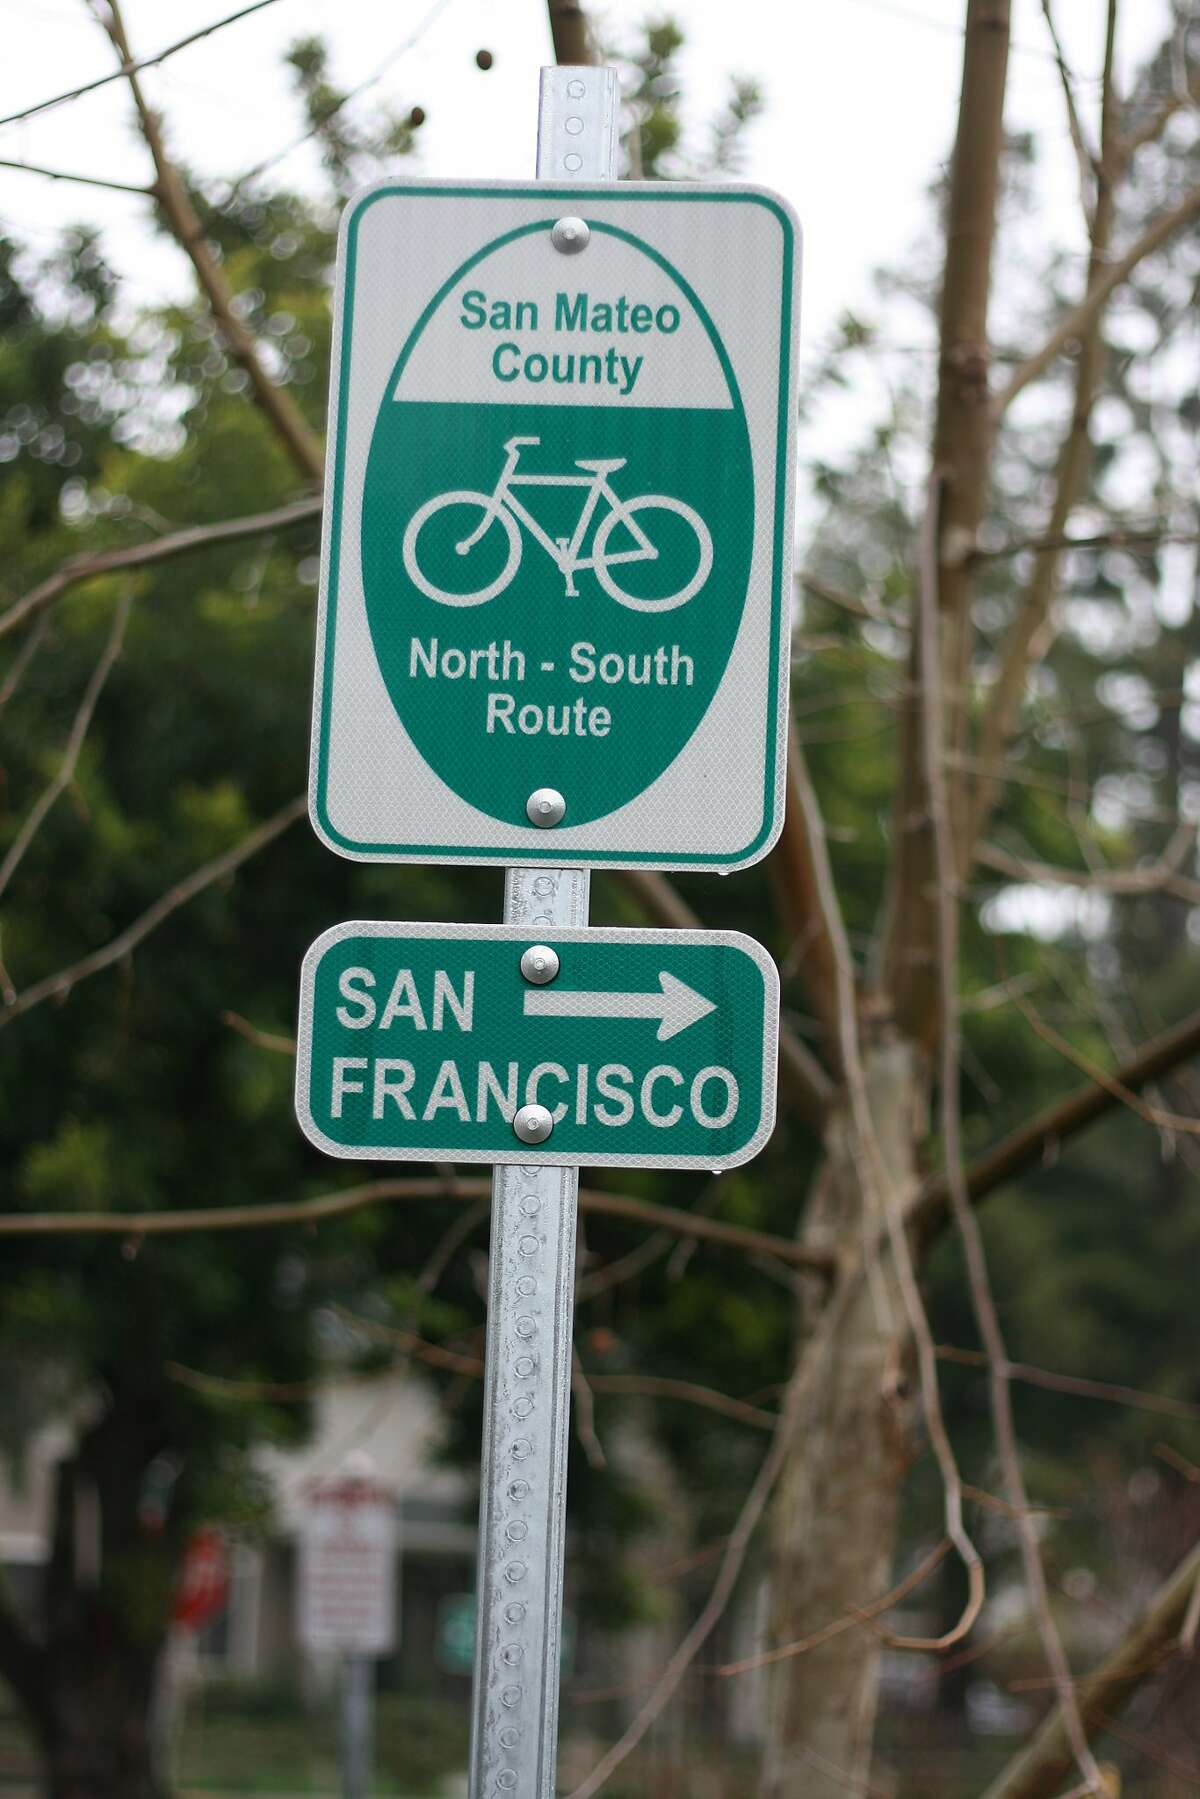 SMC north-south route-Masoner: The RSST would like to see clear and consistent bicycle route signage throughout Santa Clara and San Mateo Counties. Photo: Richard Masoner / Cyclelicious.